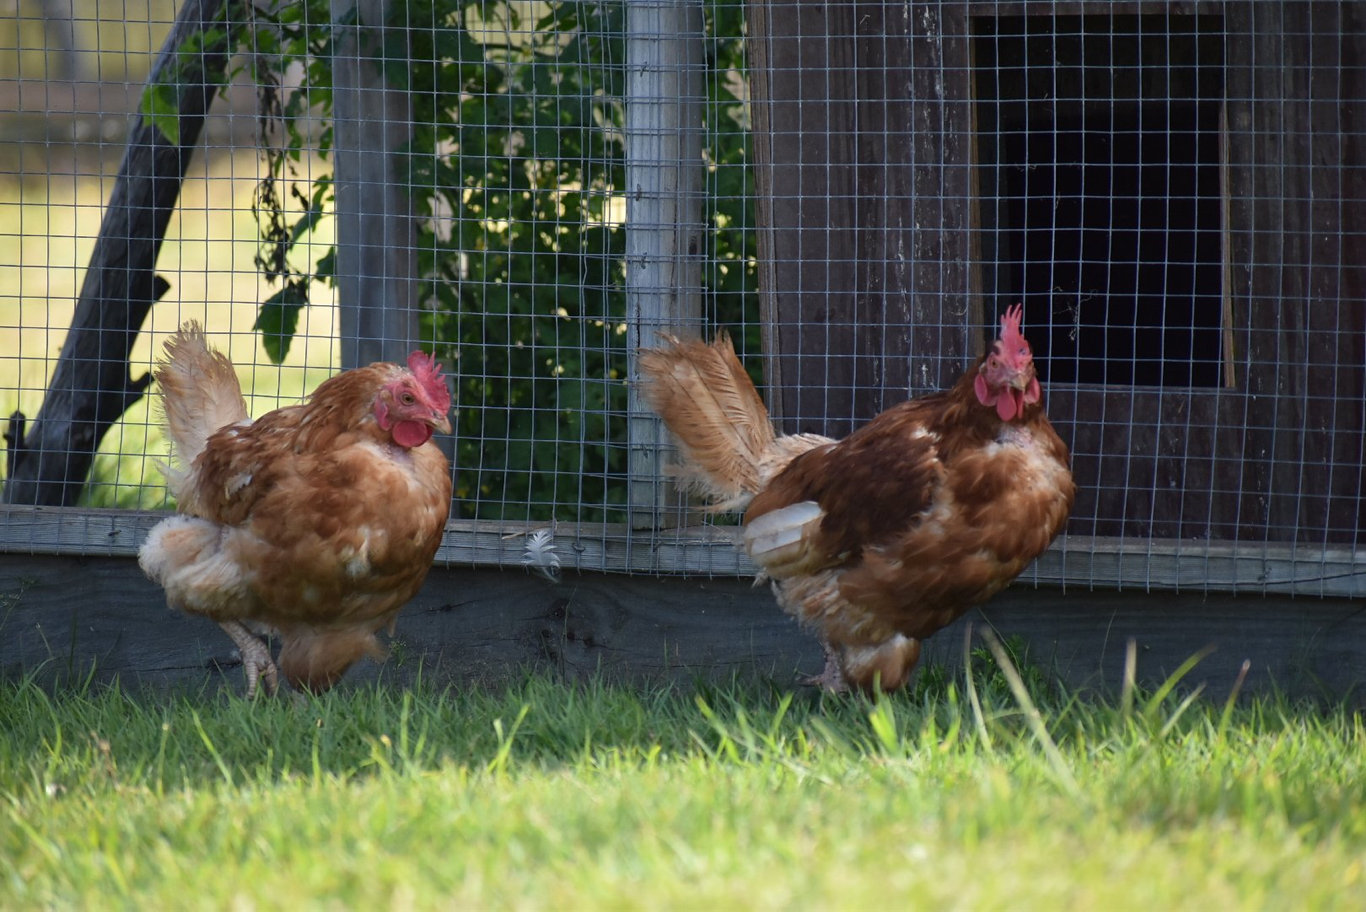 Two hens rescued from a commercial egg farm are now settling into a genuine free-range life on a Clarence Valley farm.